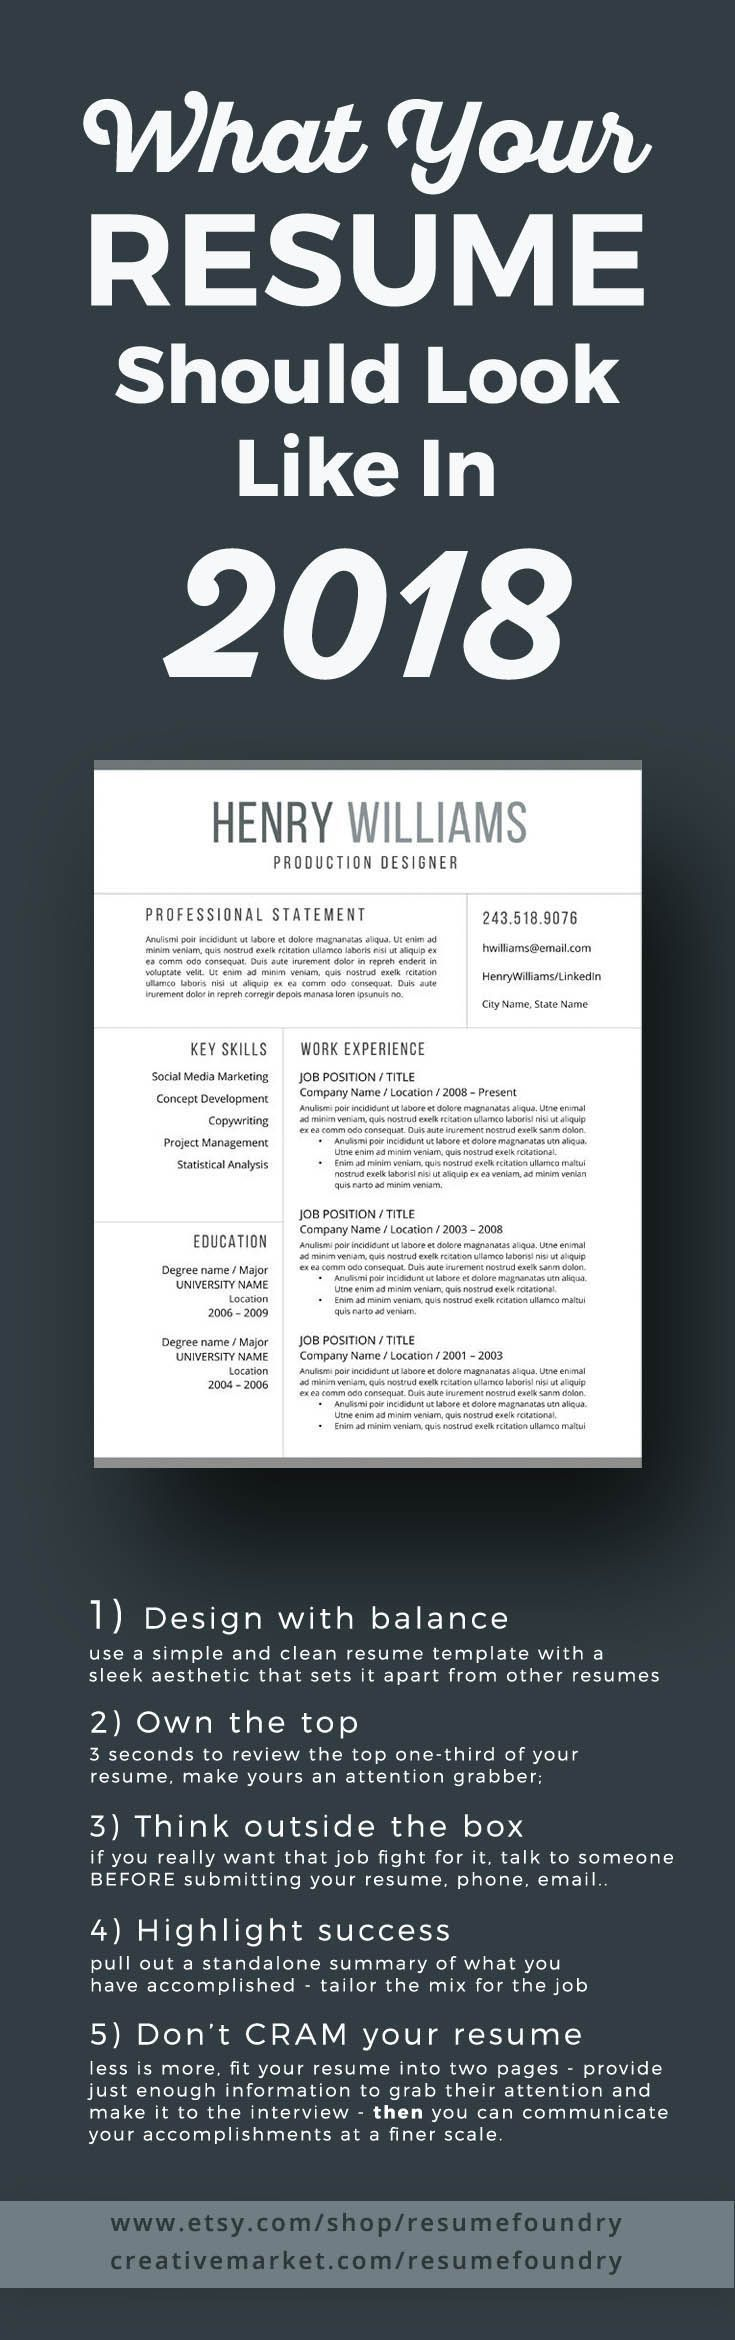 resume tips the new look of resume templates for 2018 instant